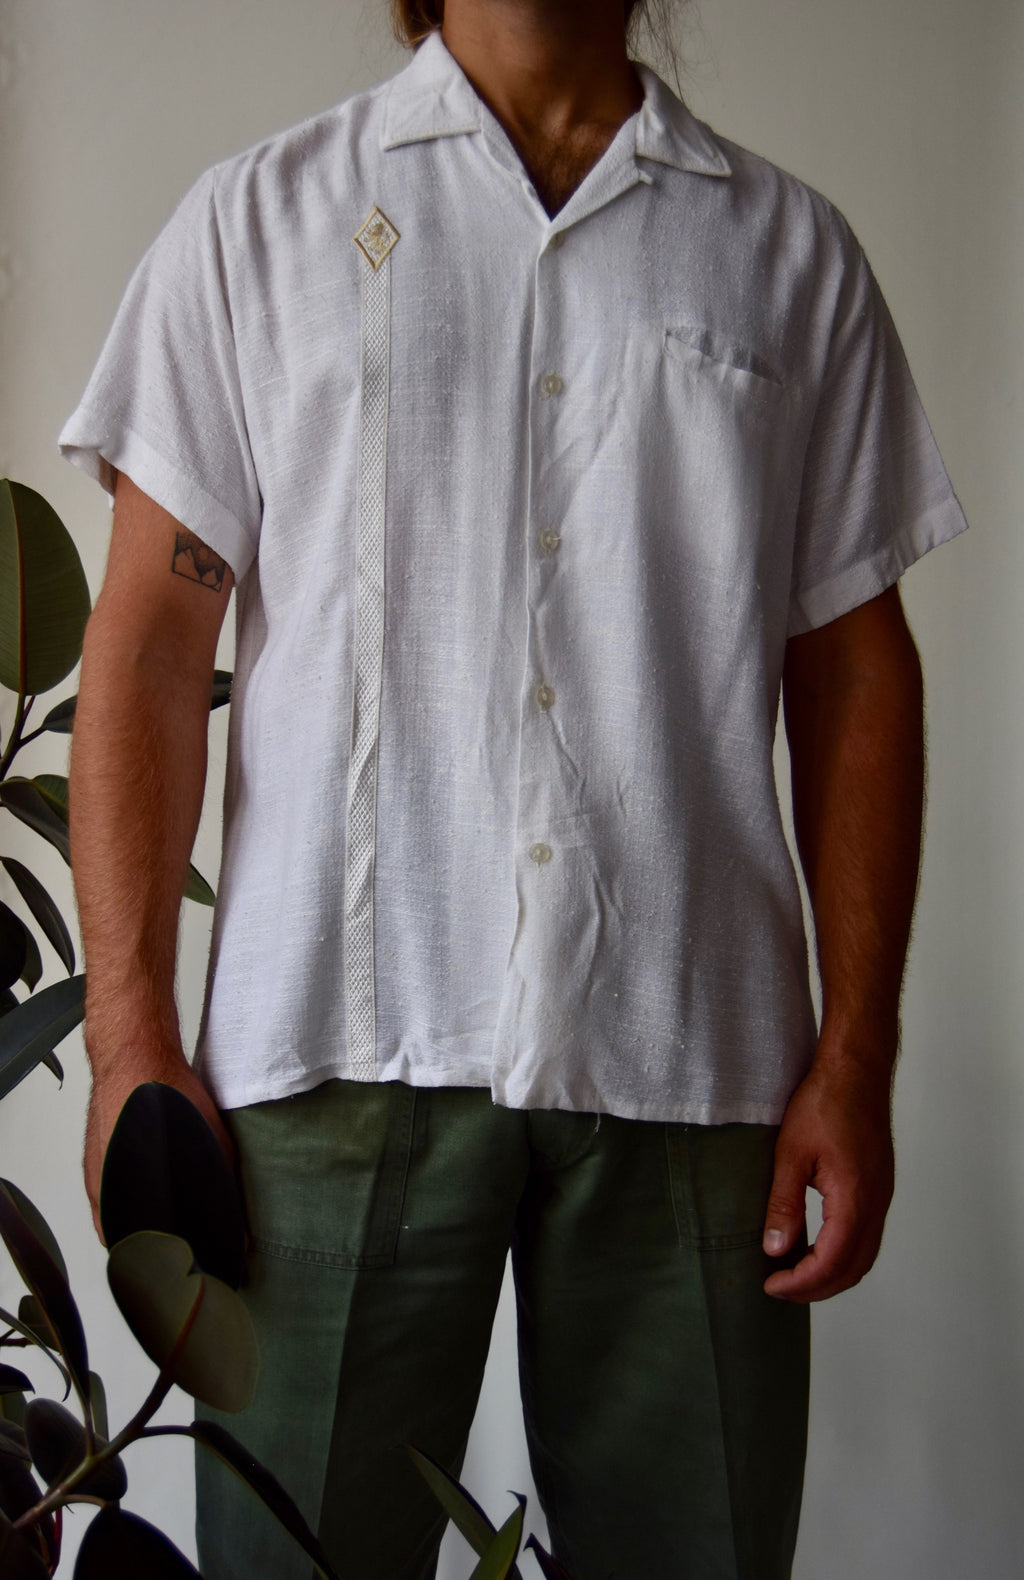 Vintage Da Vinci California Ivory Sport Shirt FREE SHIPPING TO THE U.S.